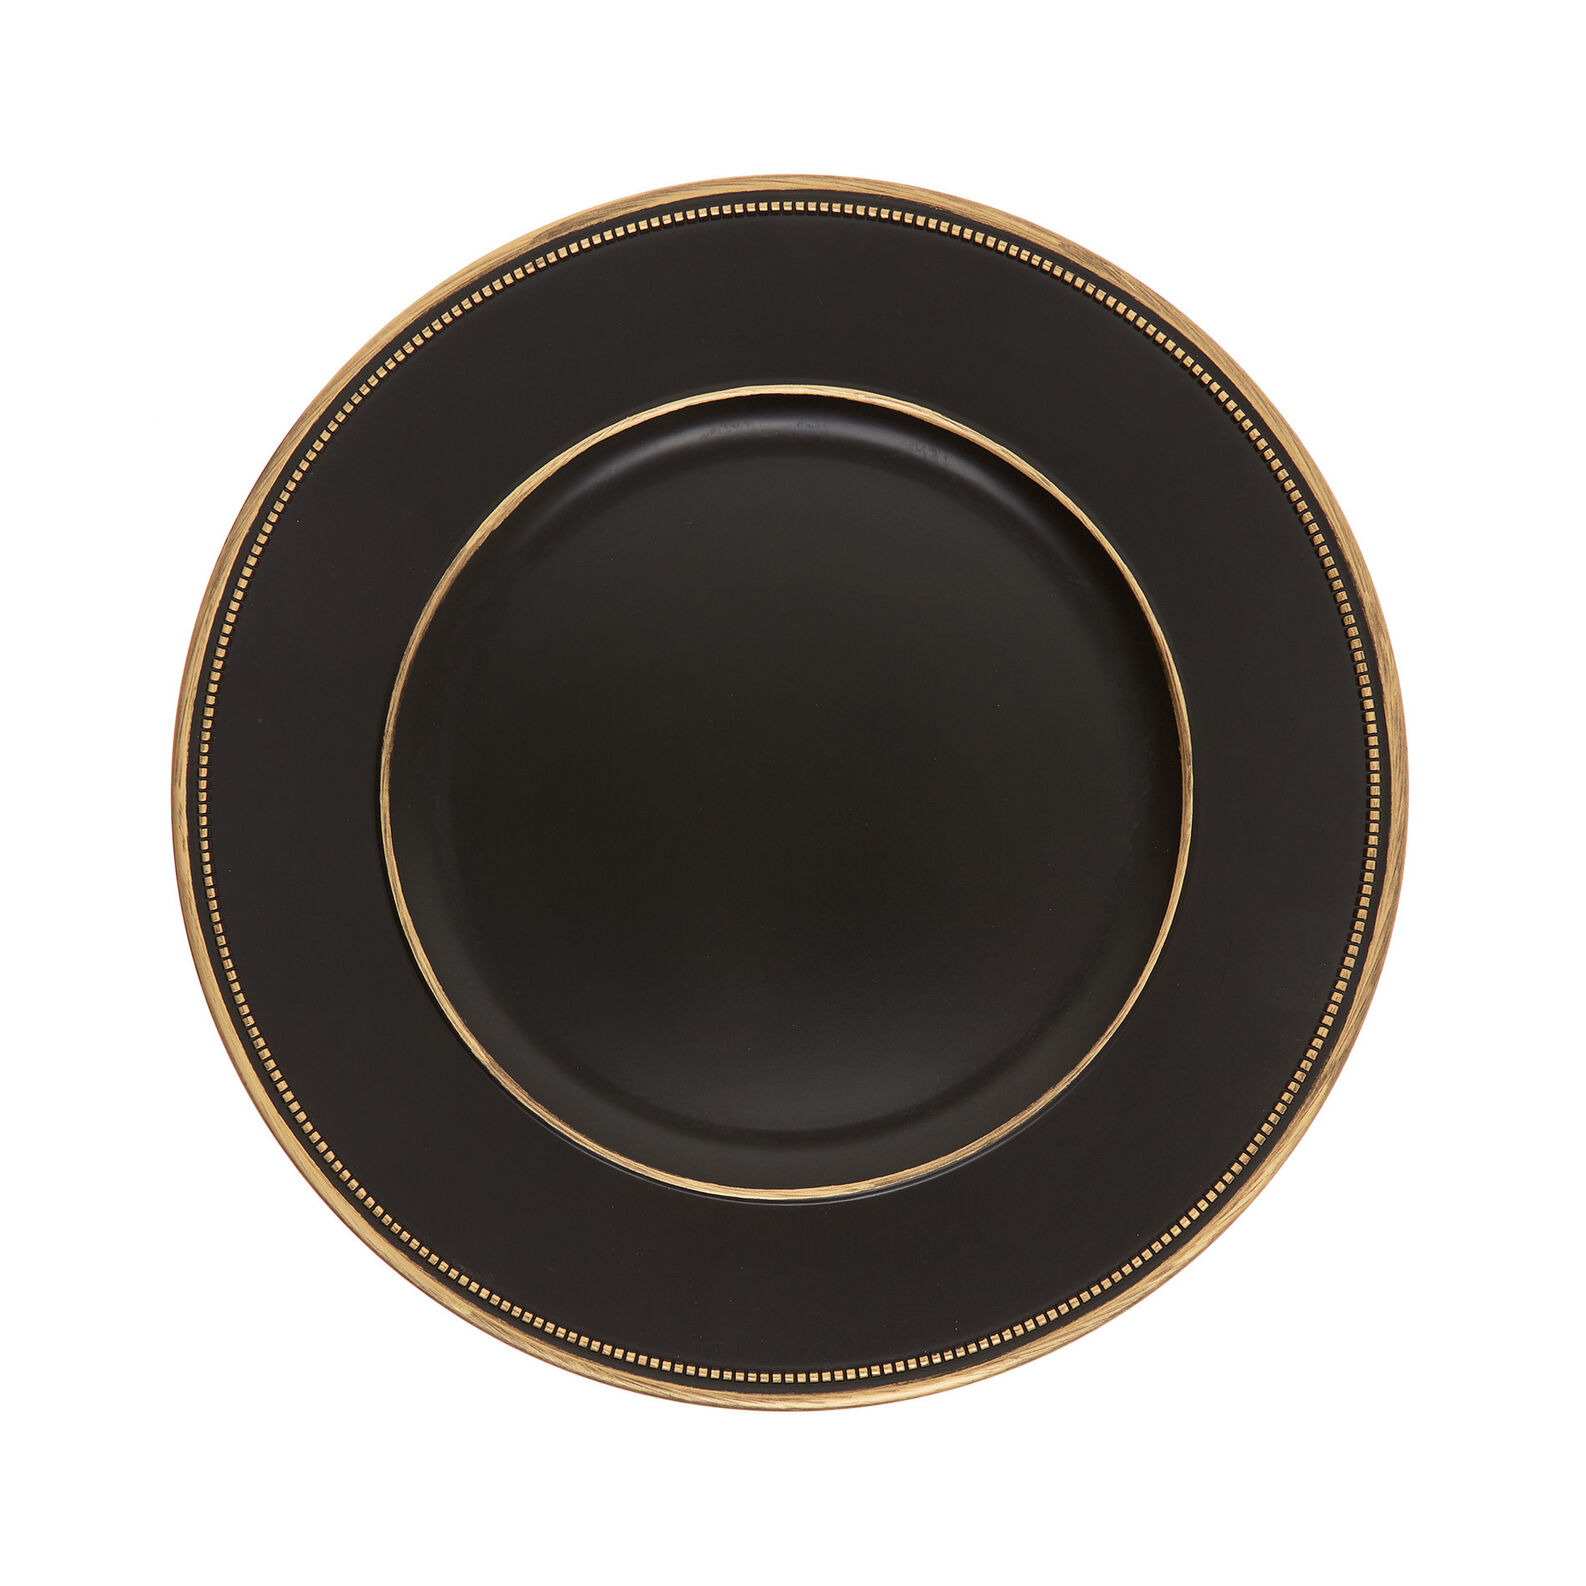 Black and gold PVC charger plate